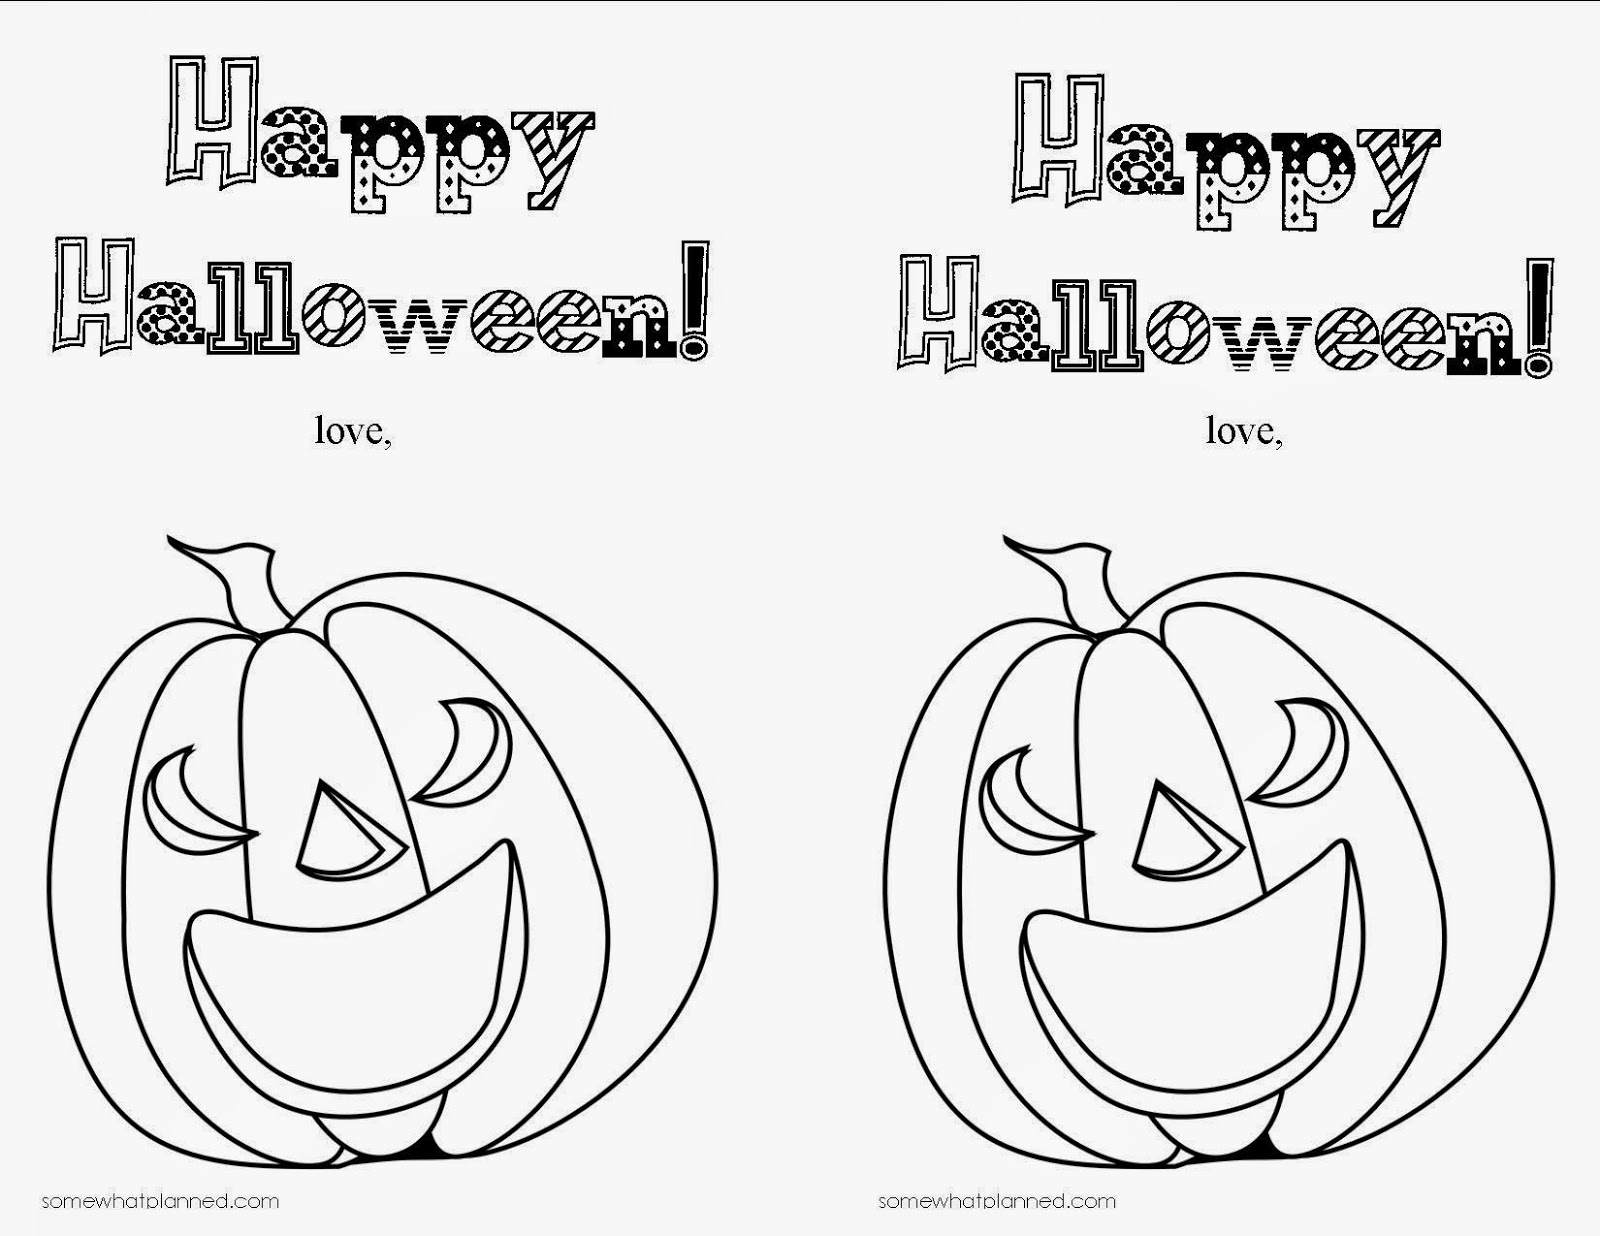 Interesting Make Your Own Coloring Pages And Free Printables Somewhat Planned With Crayola